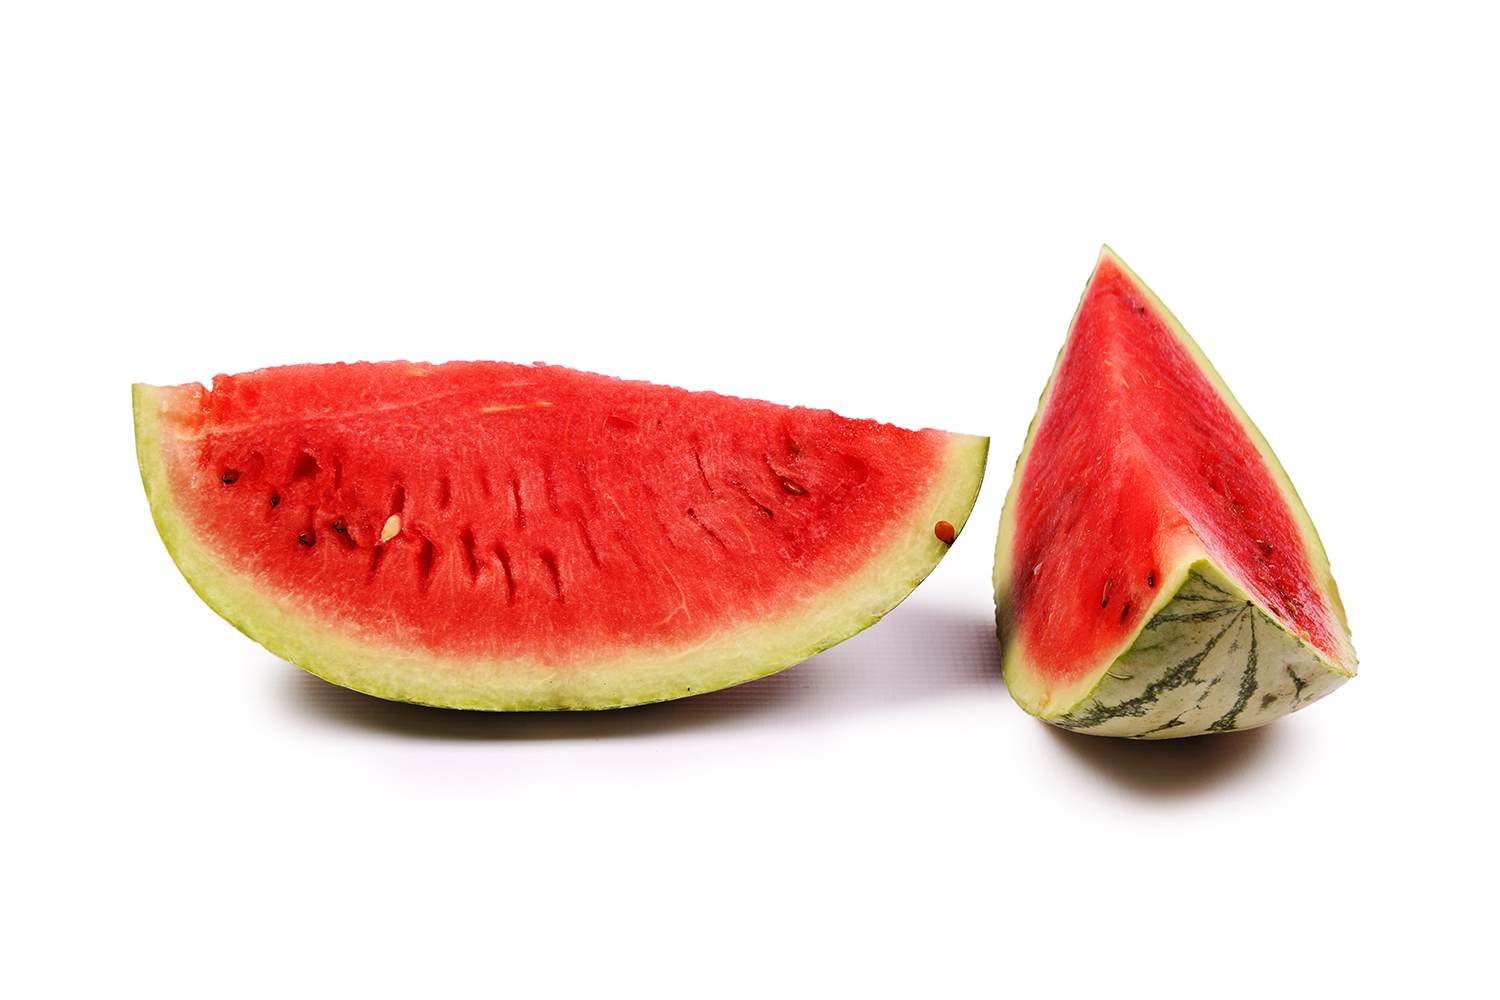 Two slices of watermelon on isolated white background